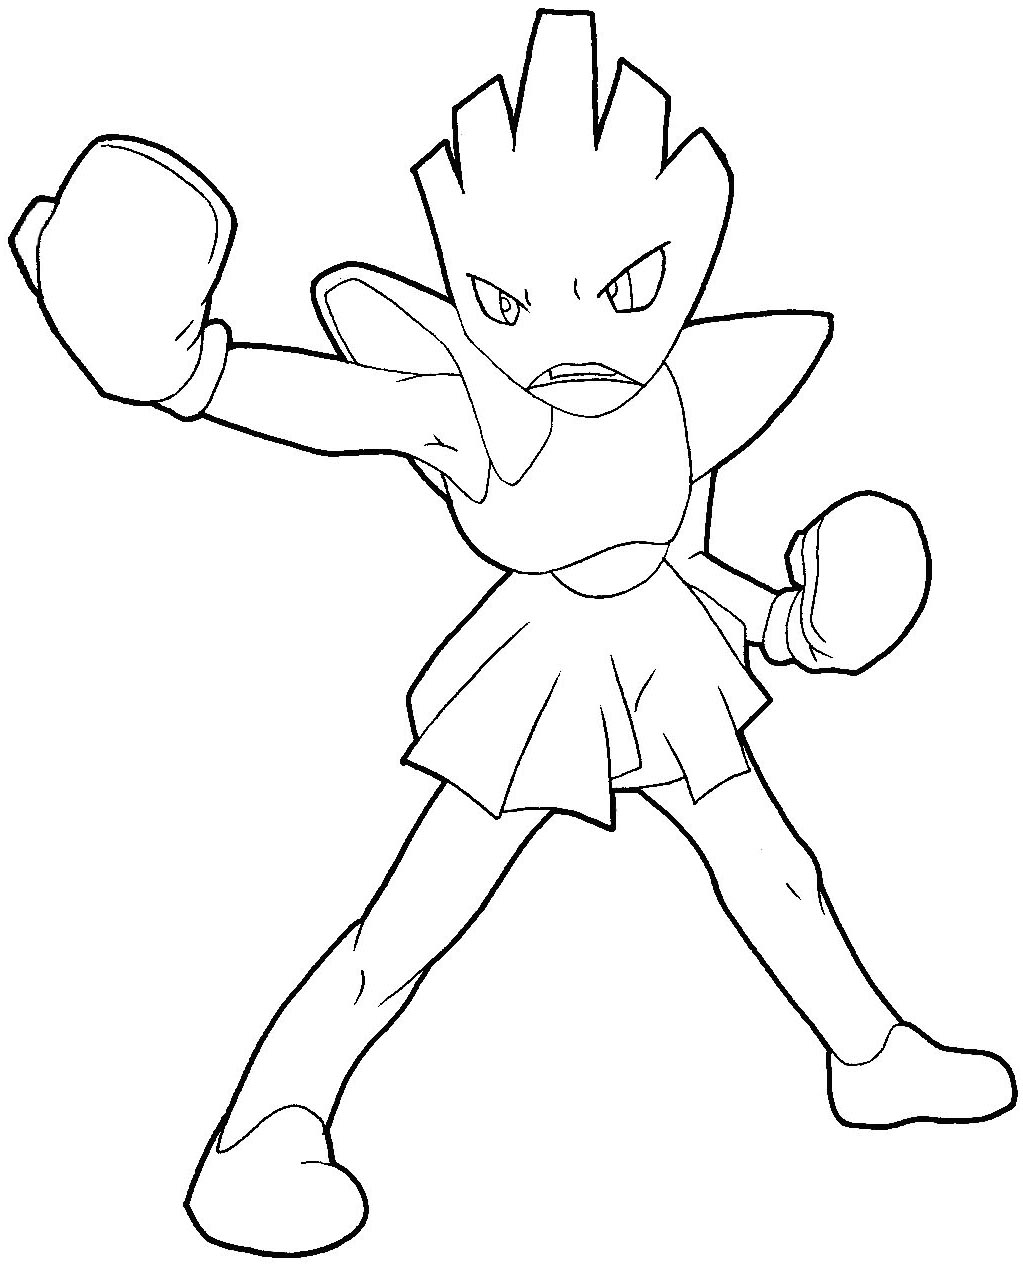 How to Draw Hitmonchan from Pokemon Step by Step Drawing